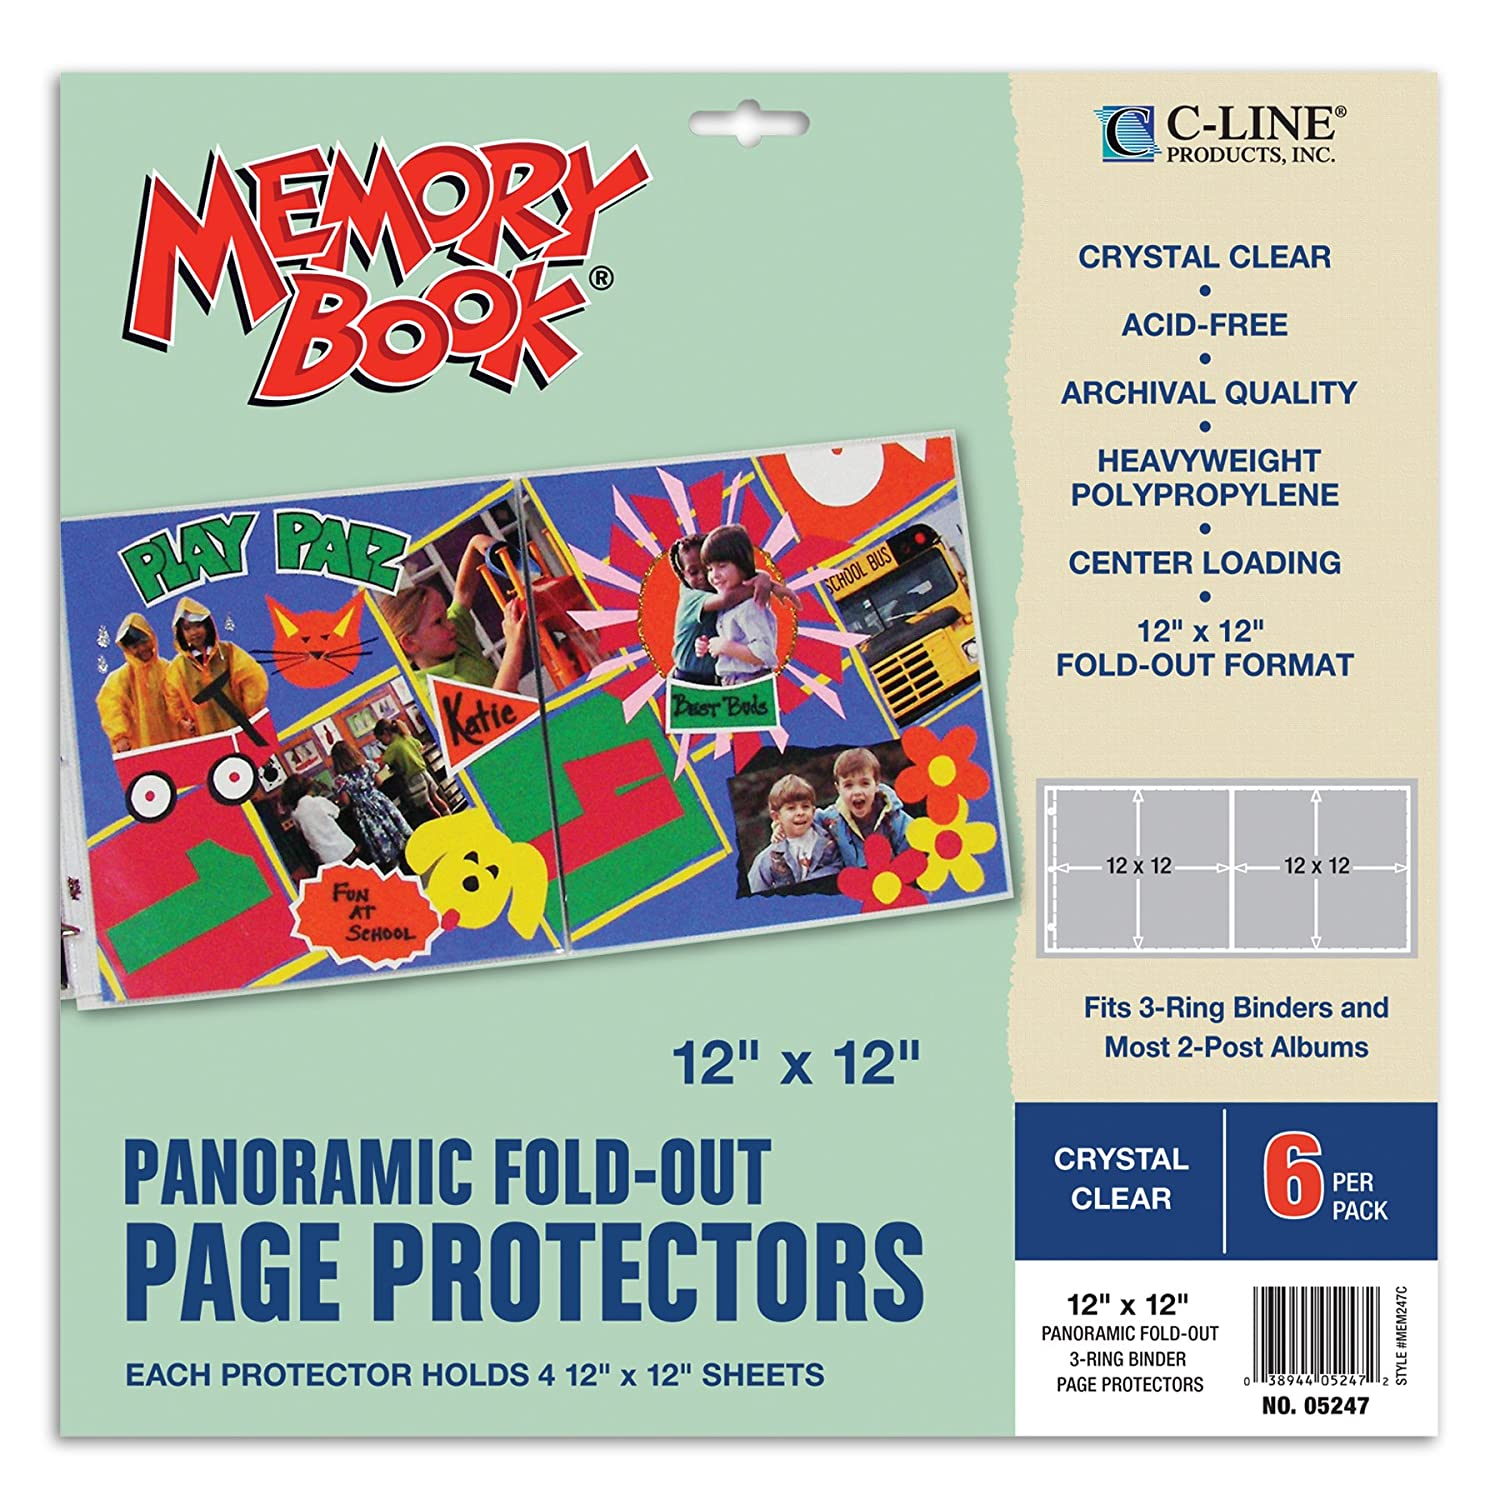 How to scrapbook without page protectors - Amazon Com C Line Memory Book Panoramic Fold Out Scrapbook Page Protectors Center Loading Clear 12 X 12 Inches 6 Pages Per Pack 05247 Arts